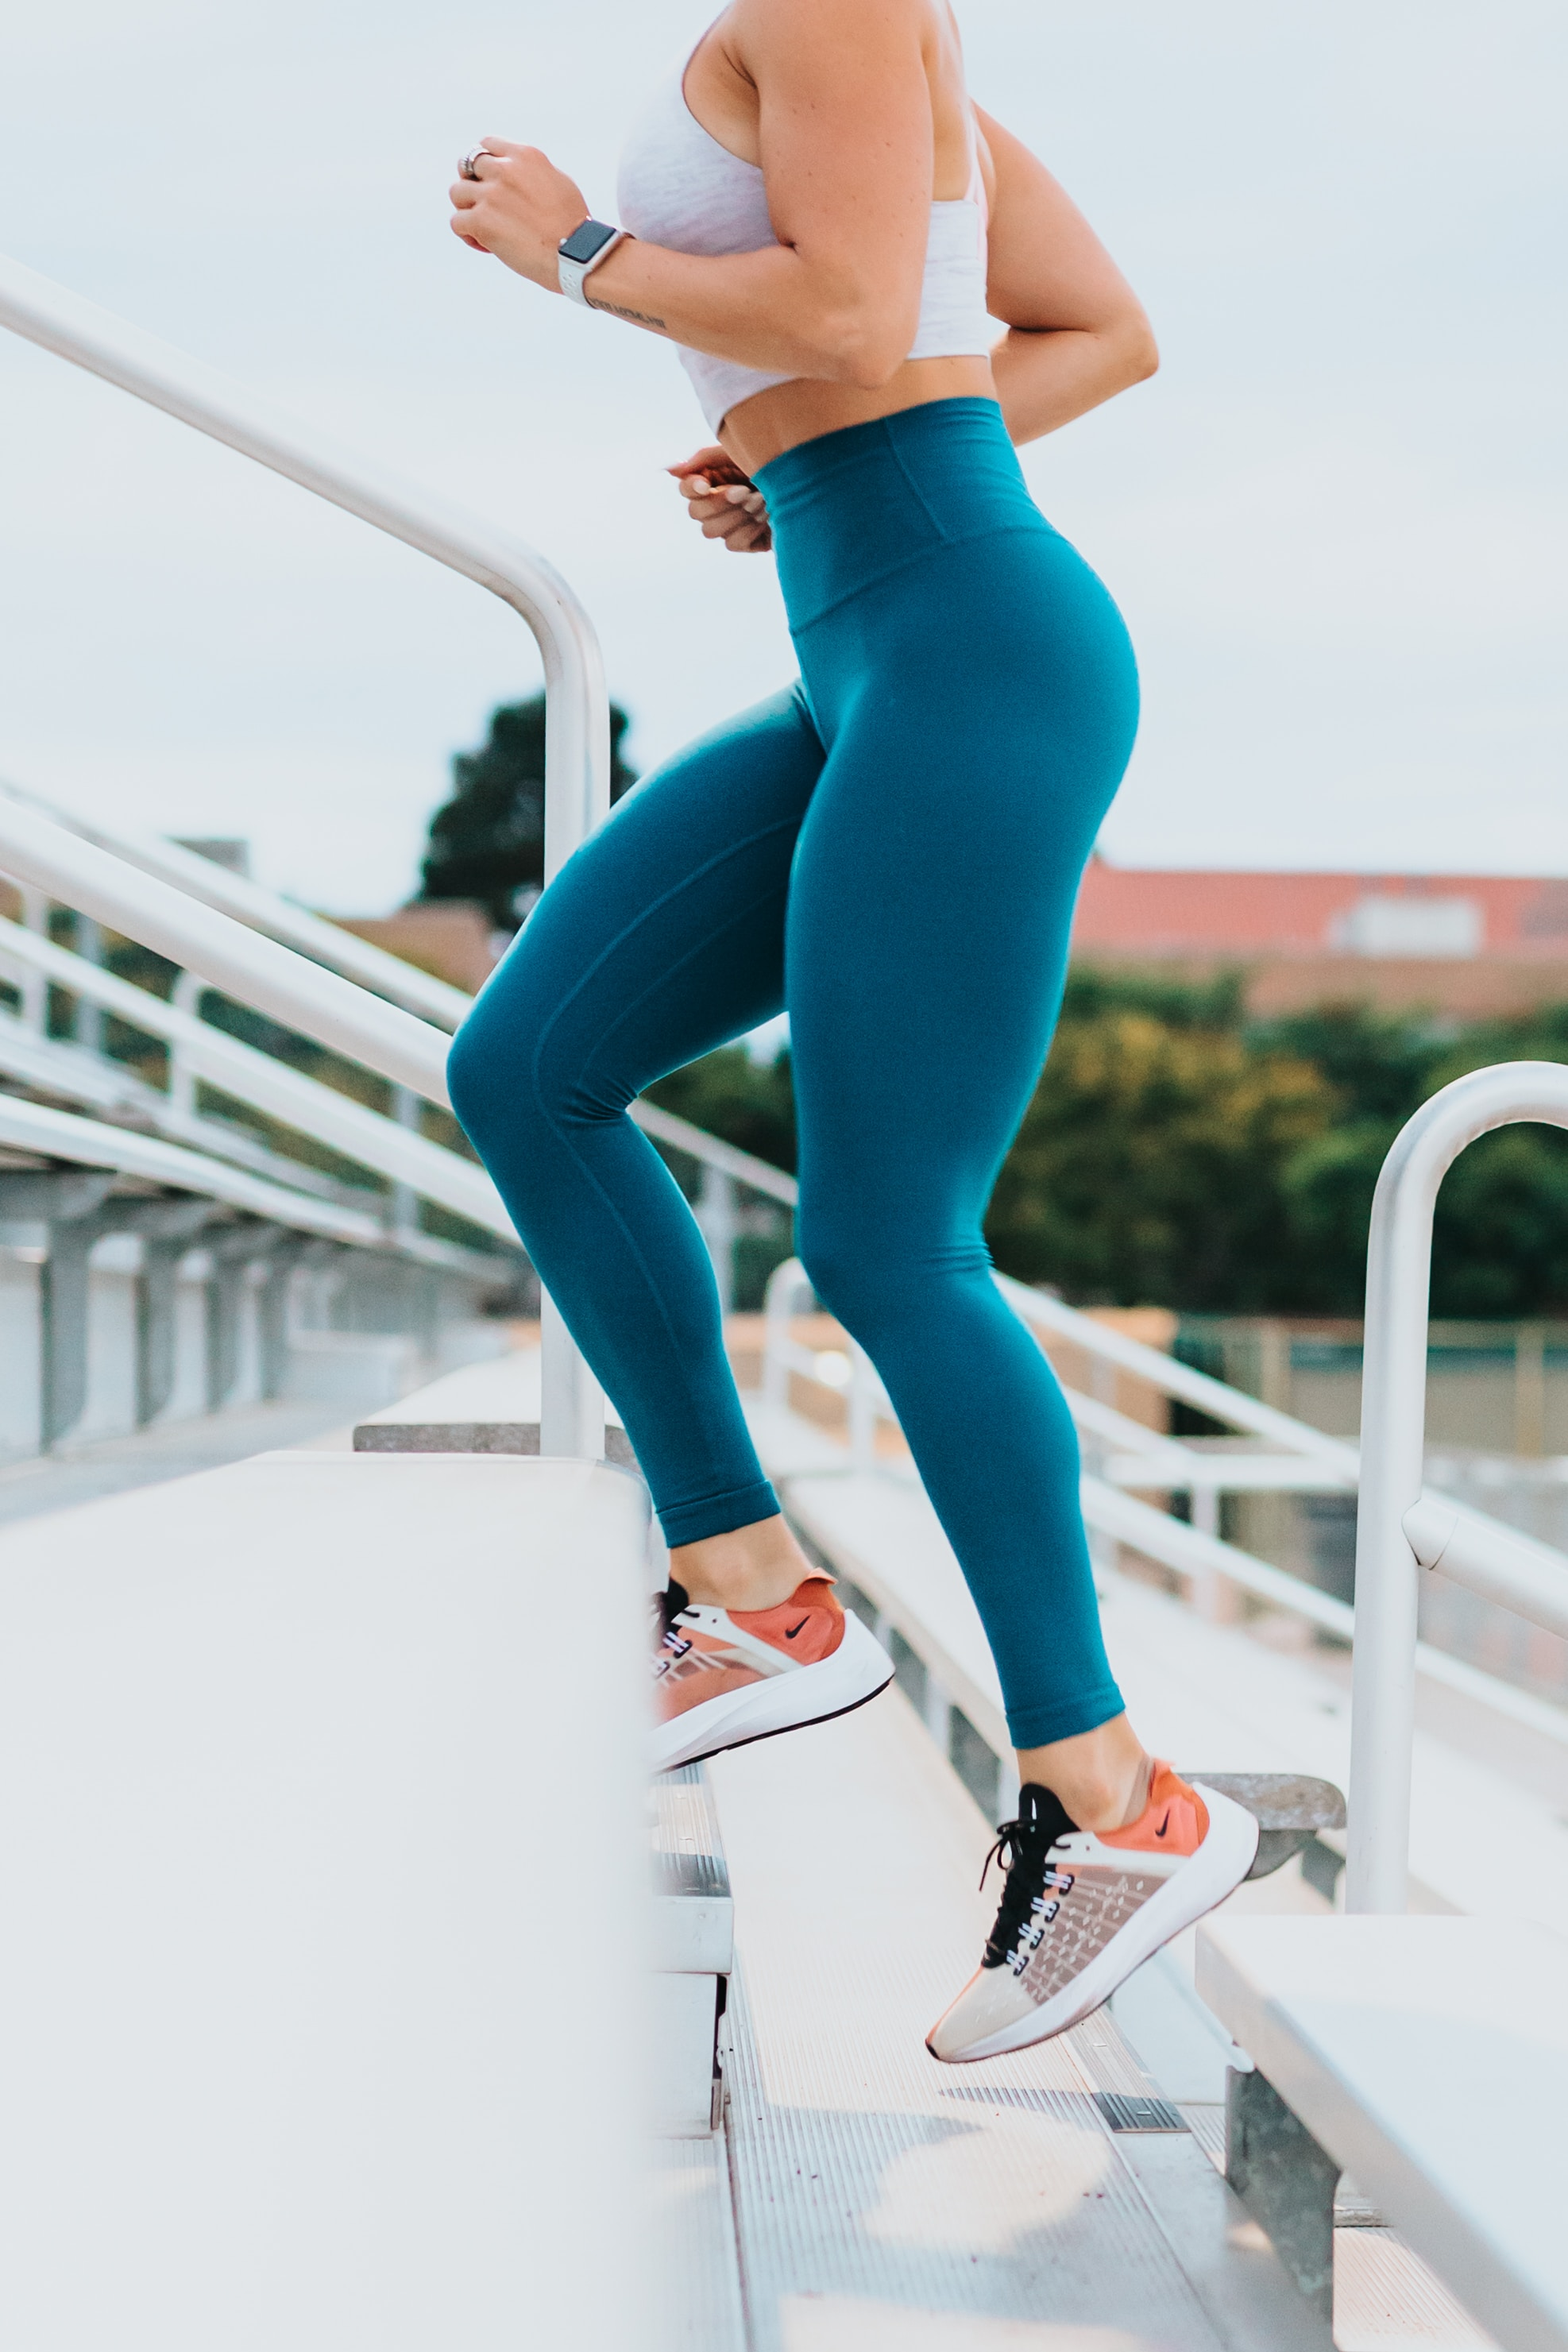 5 Ways to Look After Your Joints